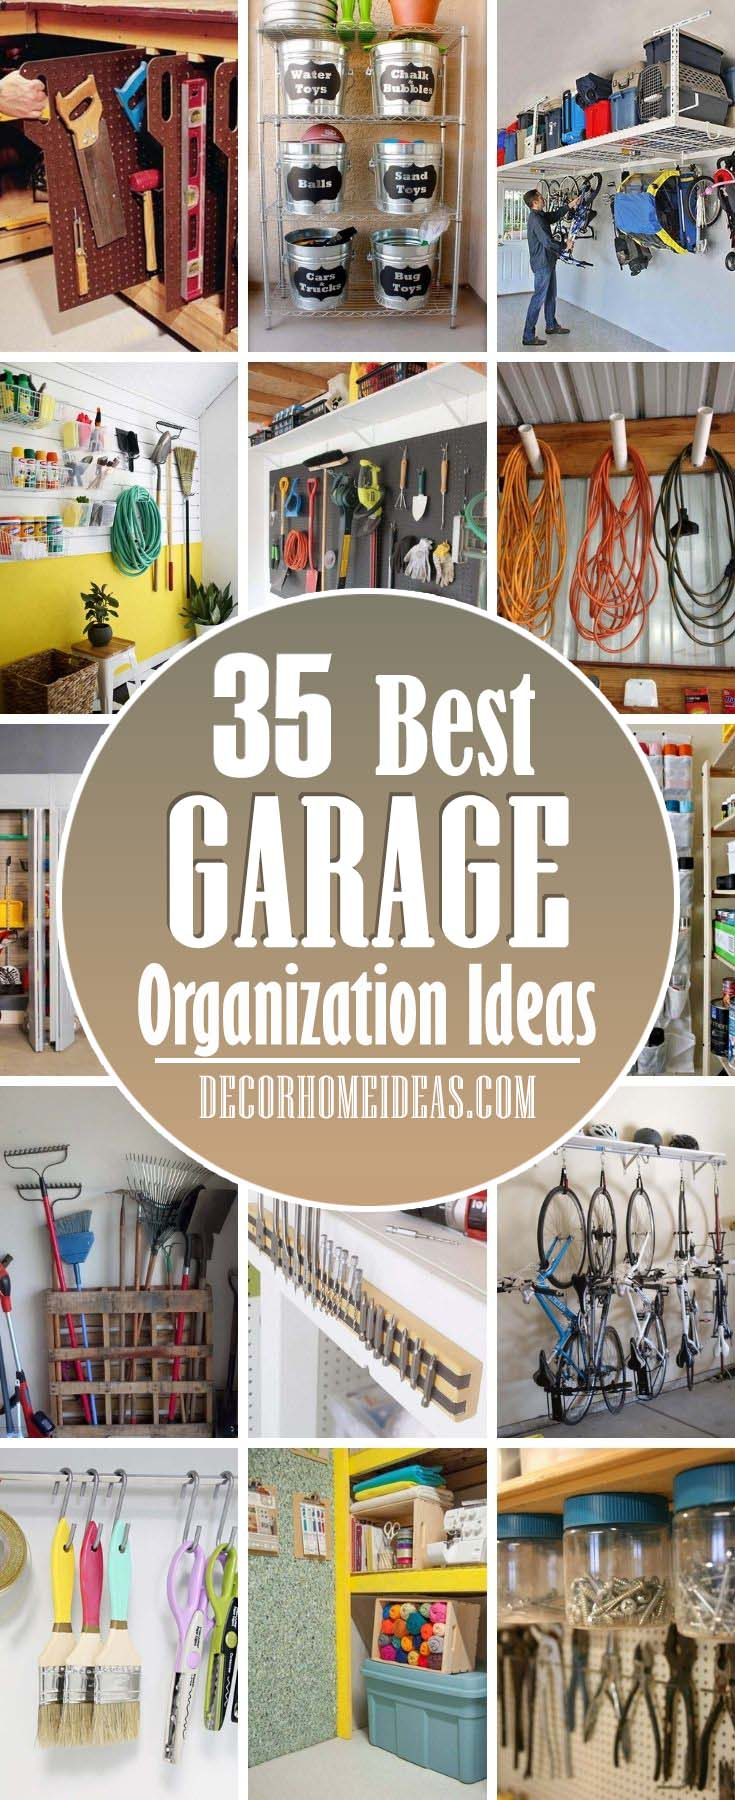 Best Garage Organization Ideas. Make your garage a clutter-free area with these storage and shelving solutions for your tools, bikes, gear and more.  #decorhomeideas